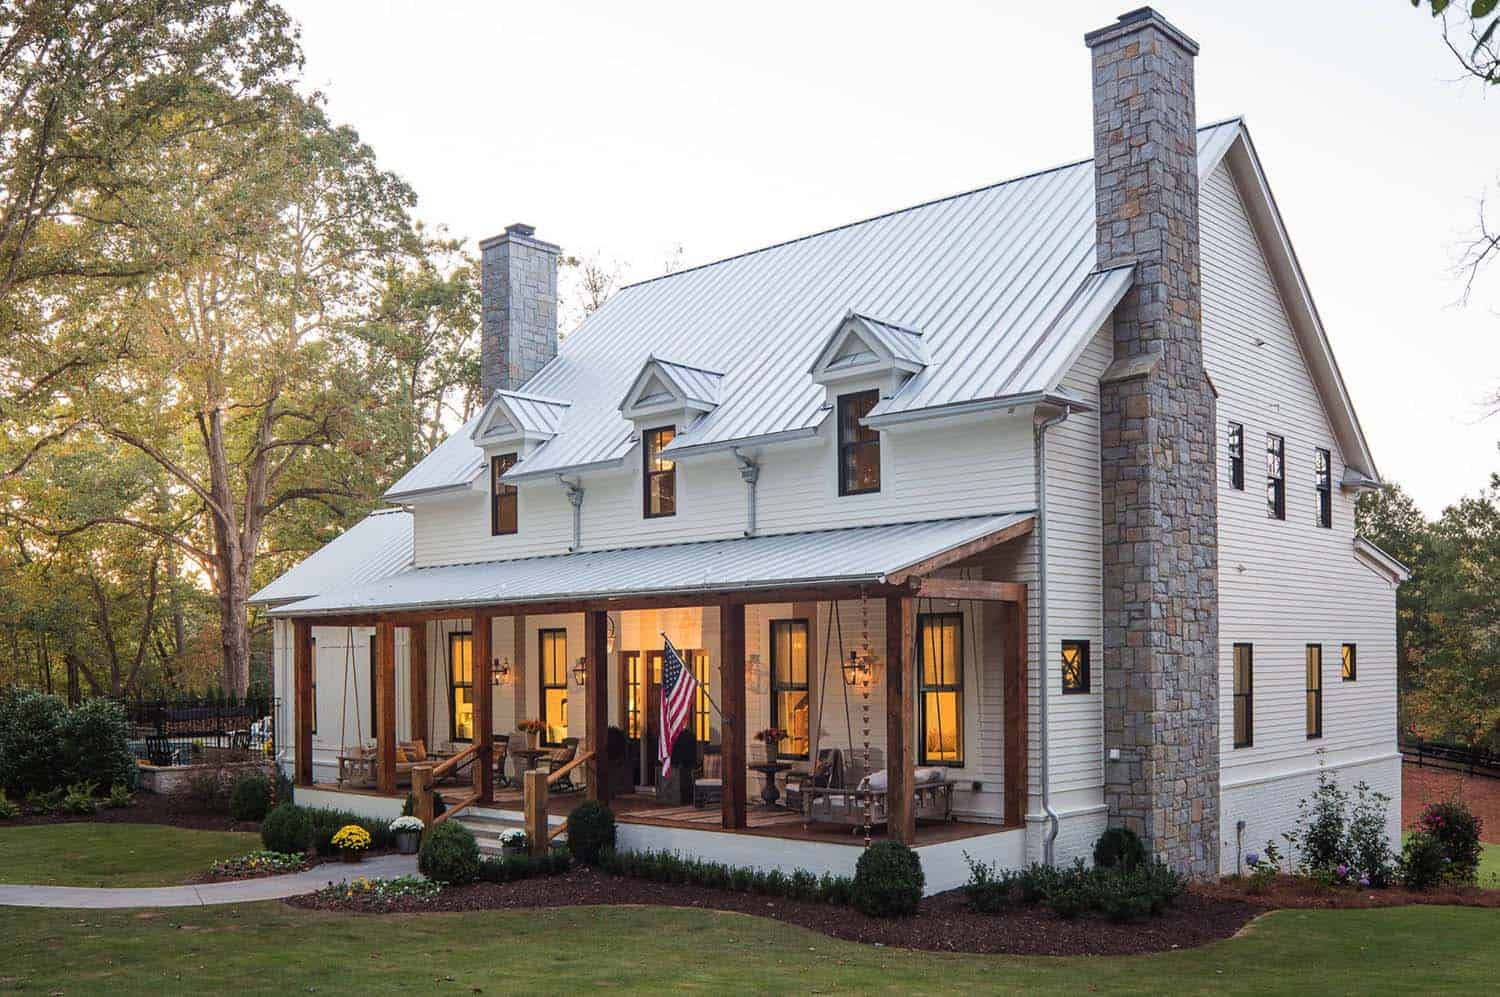 A delightful modern farmhouse with Southern charm in Georgia on